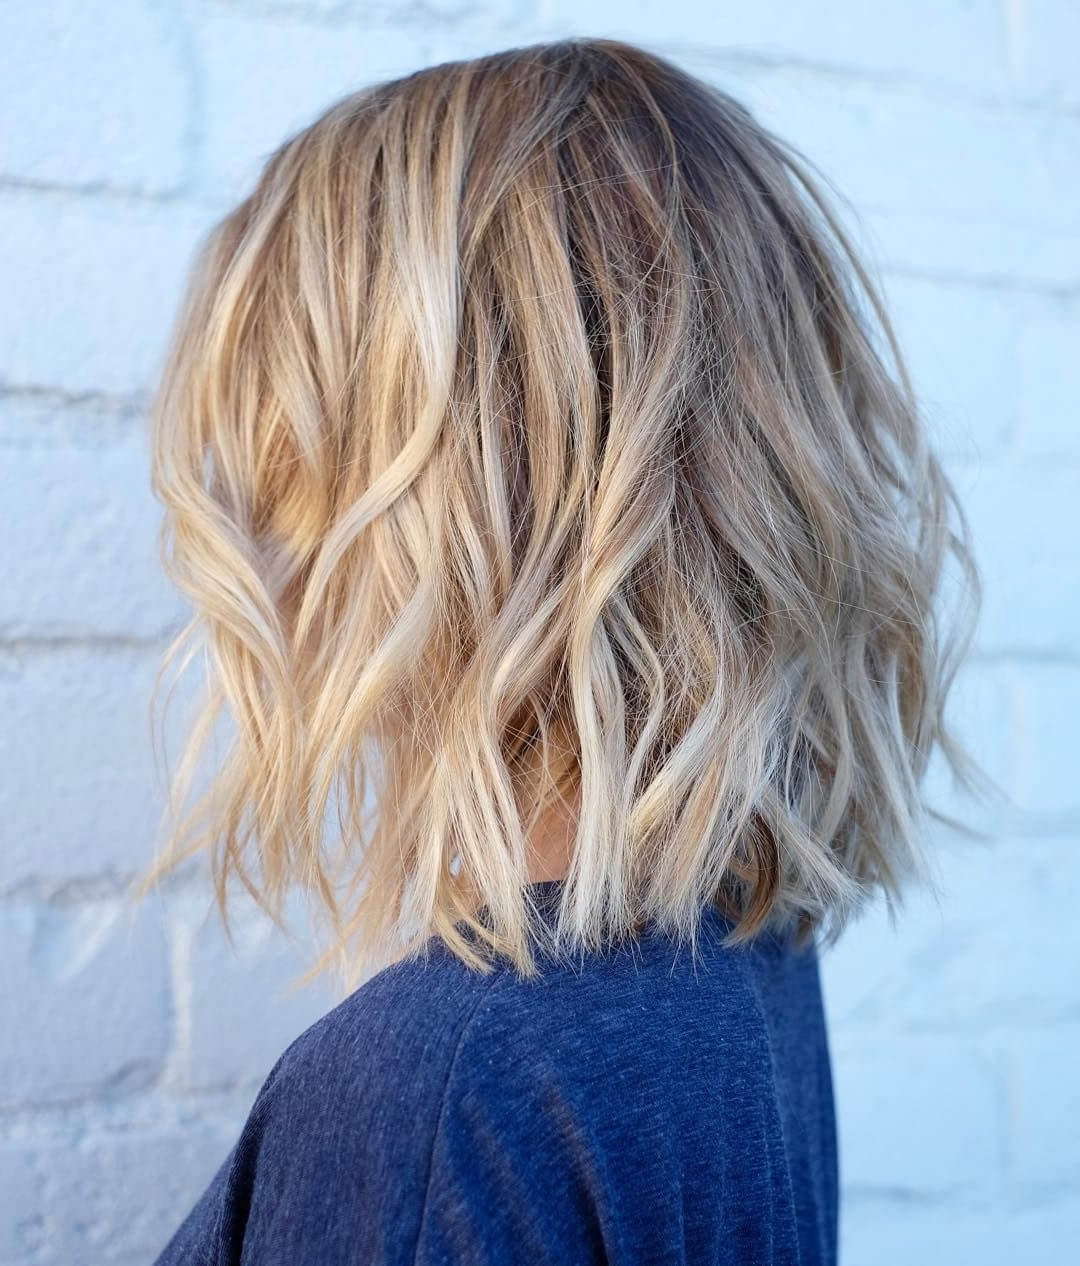 50 Fresh Short Blonde Hair Ideas To Update Your Style In 2018 Throughout Trendy Long Honey Blonde And Black Pixie Hairstyles (View 3 of 20)